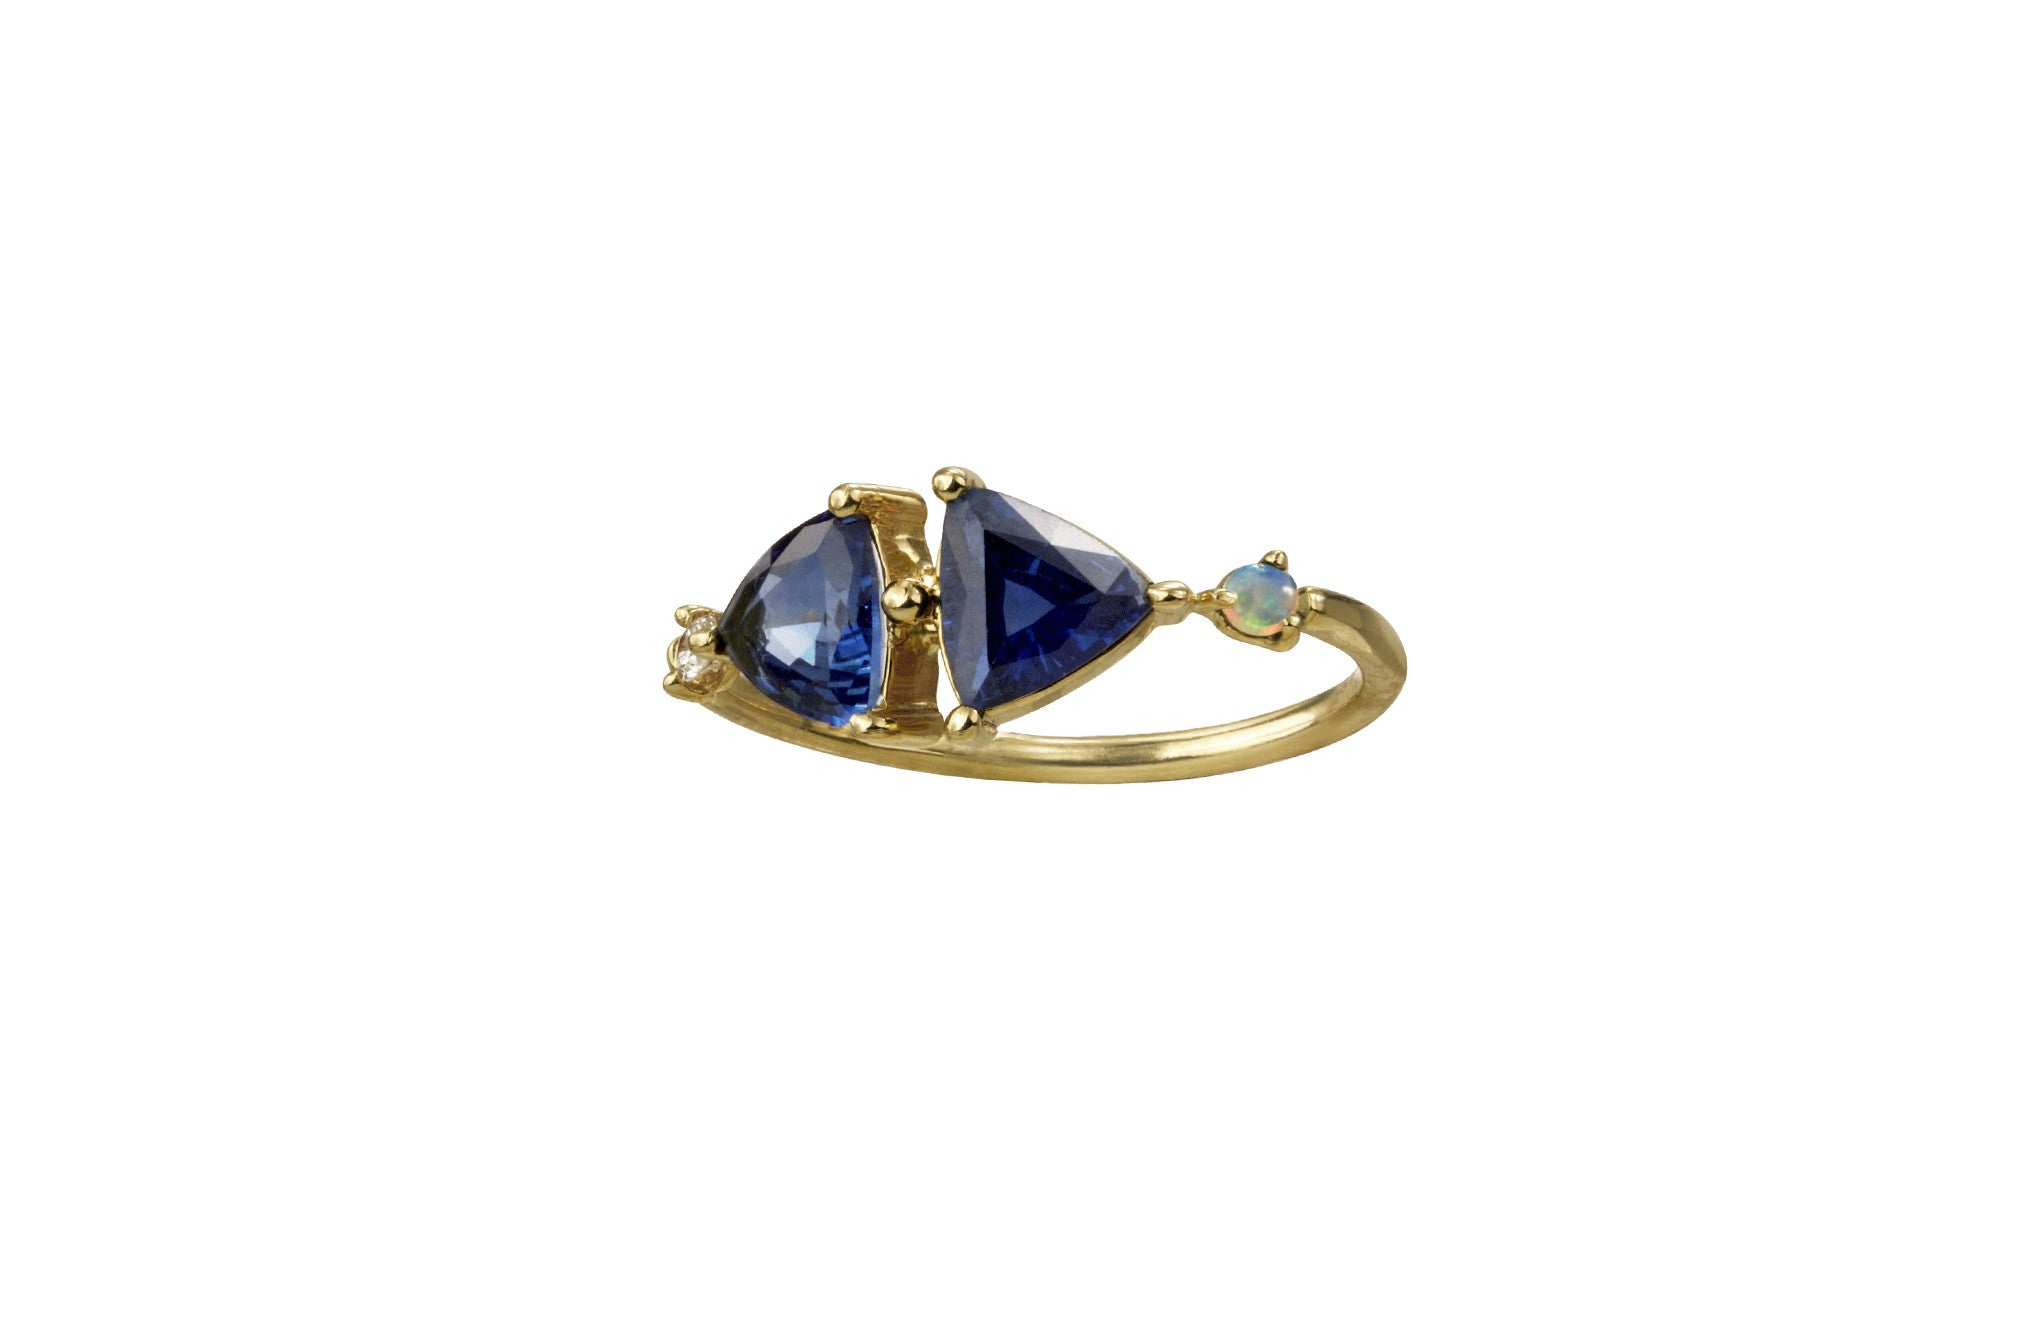 One of a Kind Mirrored Sapphire Ring - Available at Ylang 23